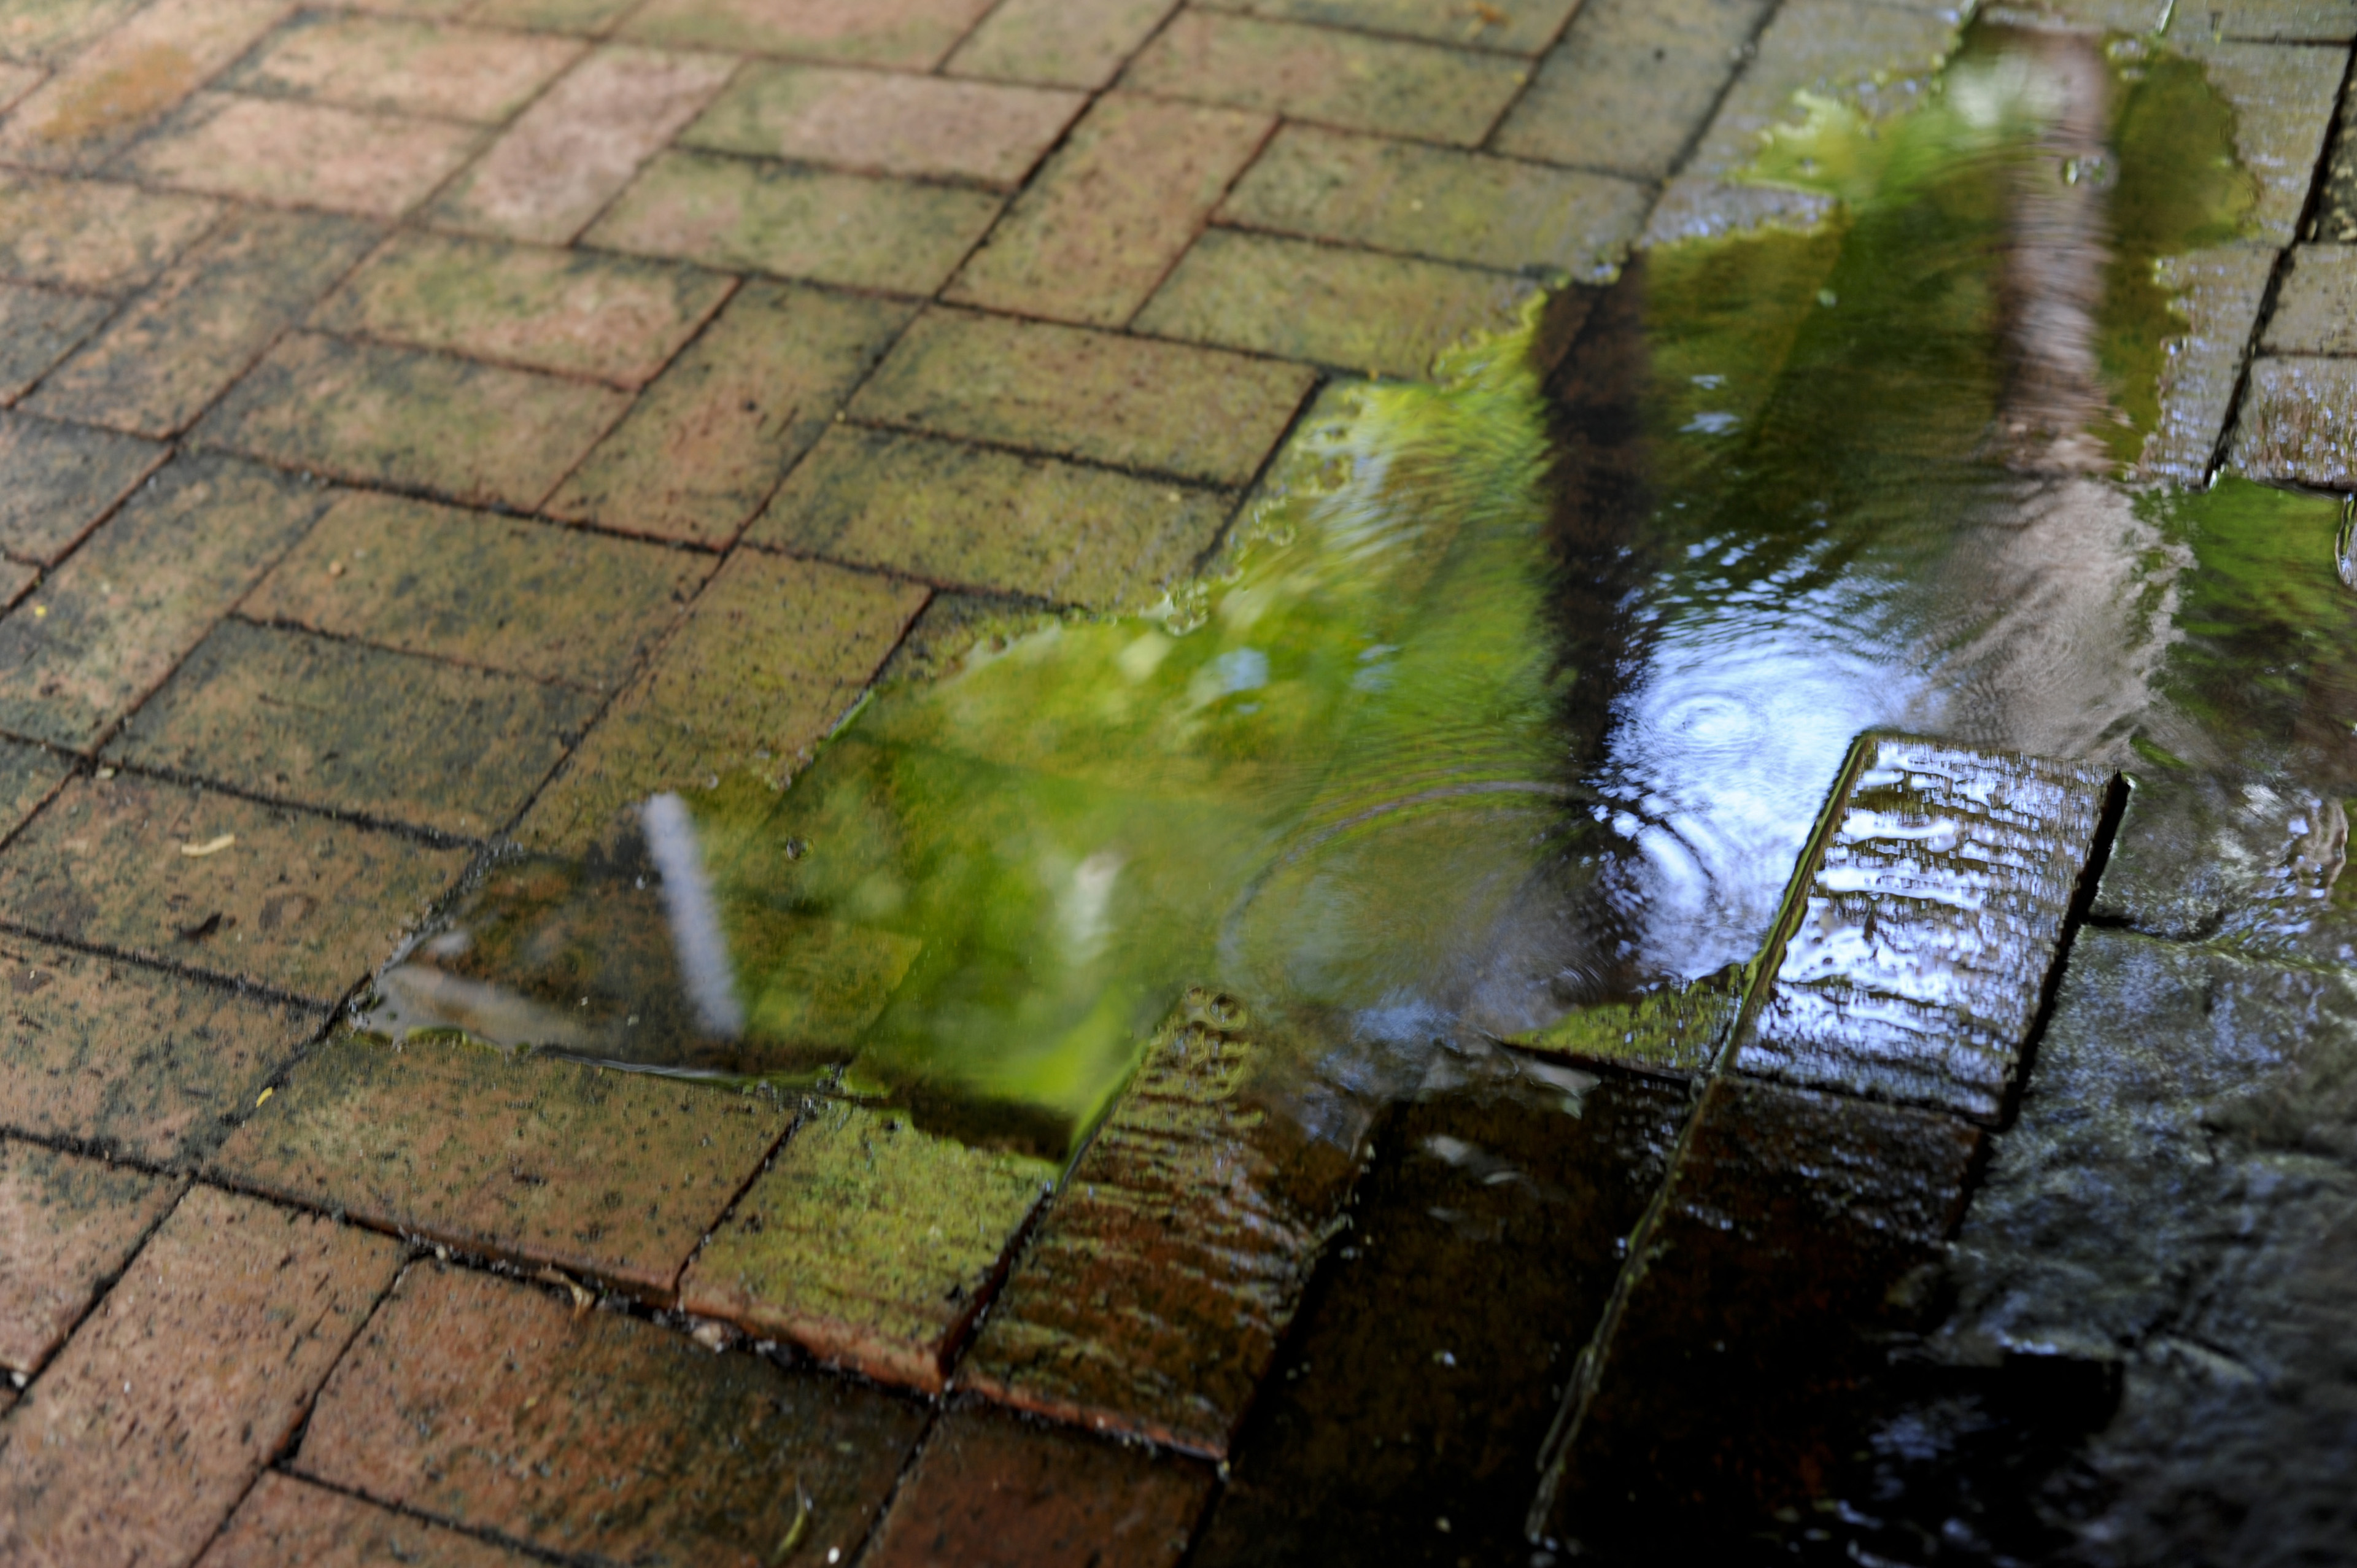 Green vegetation reflected in a puddle of rain water on brick paving outdoors in a garden